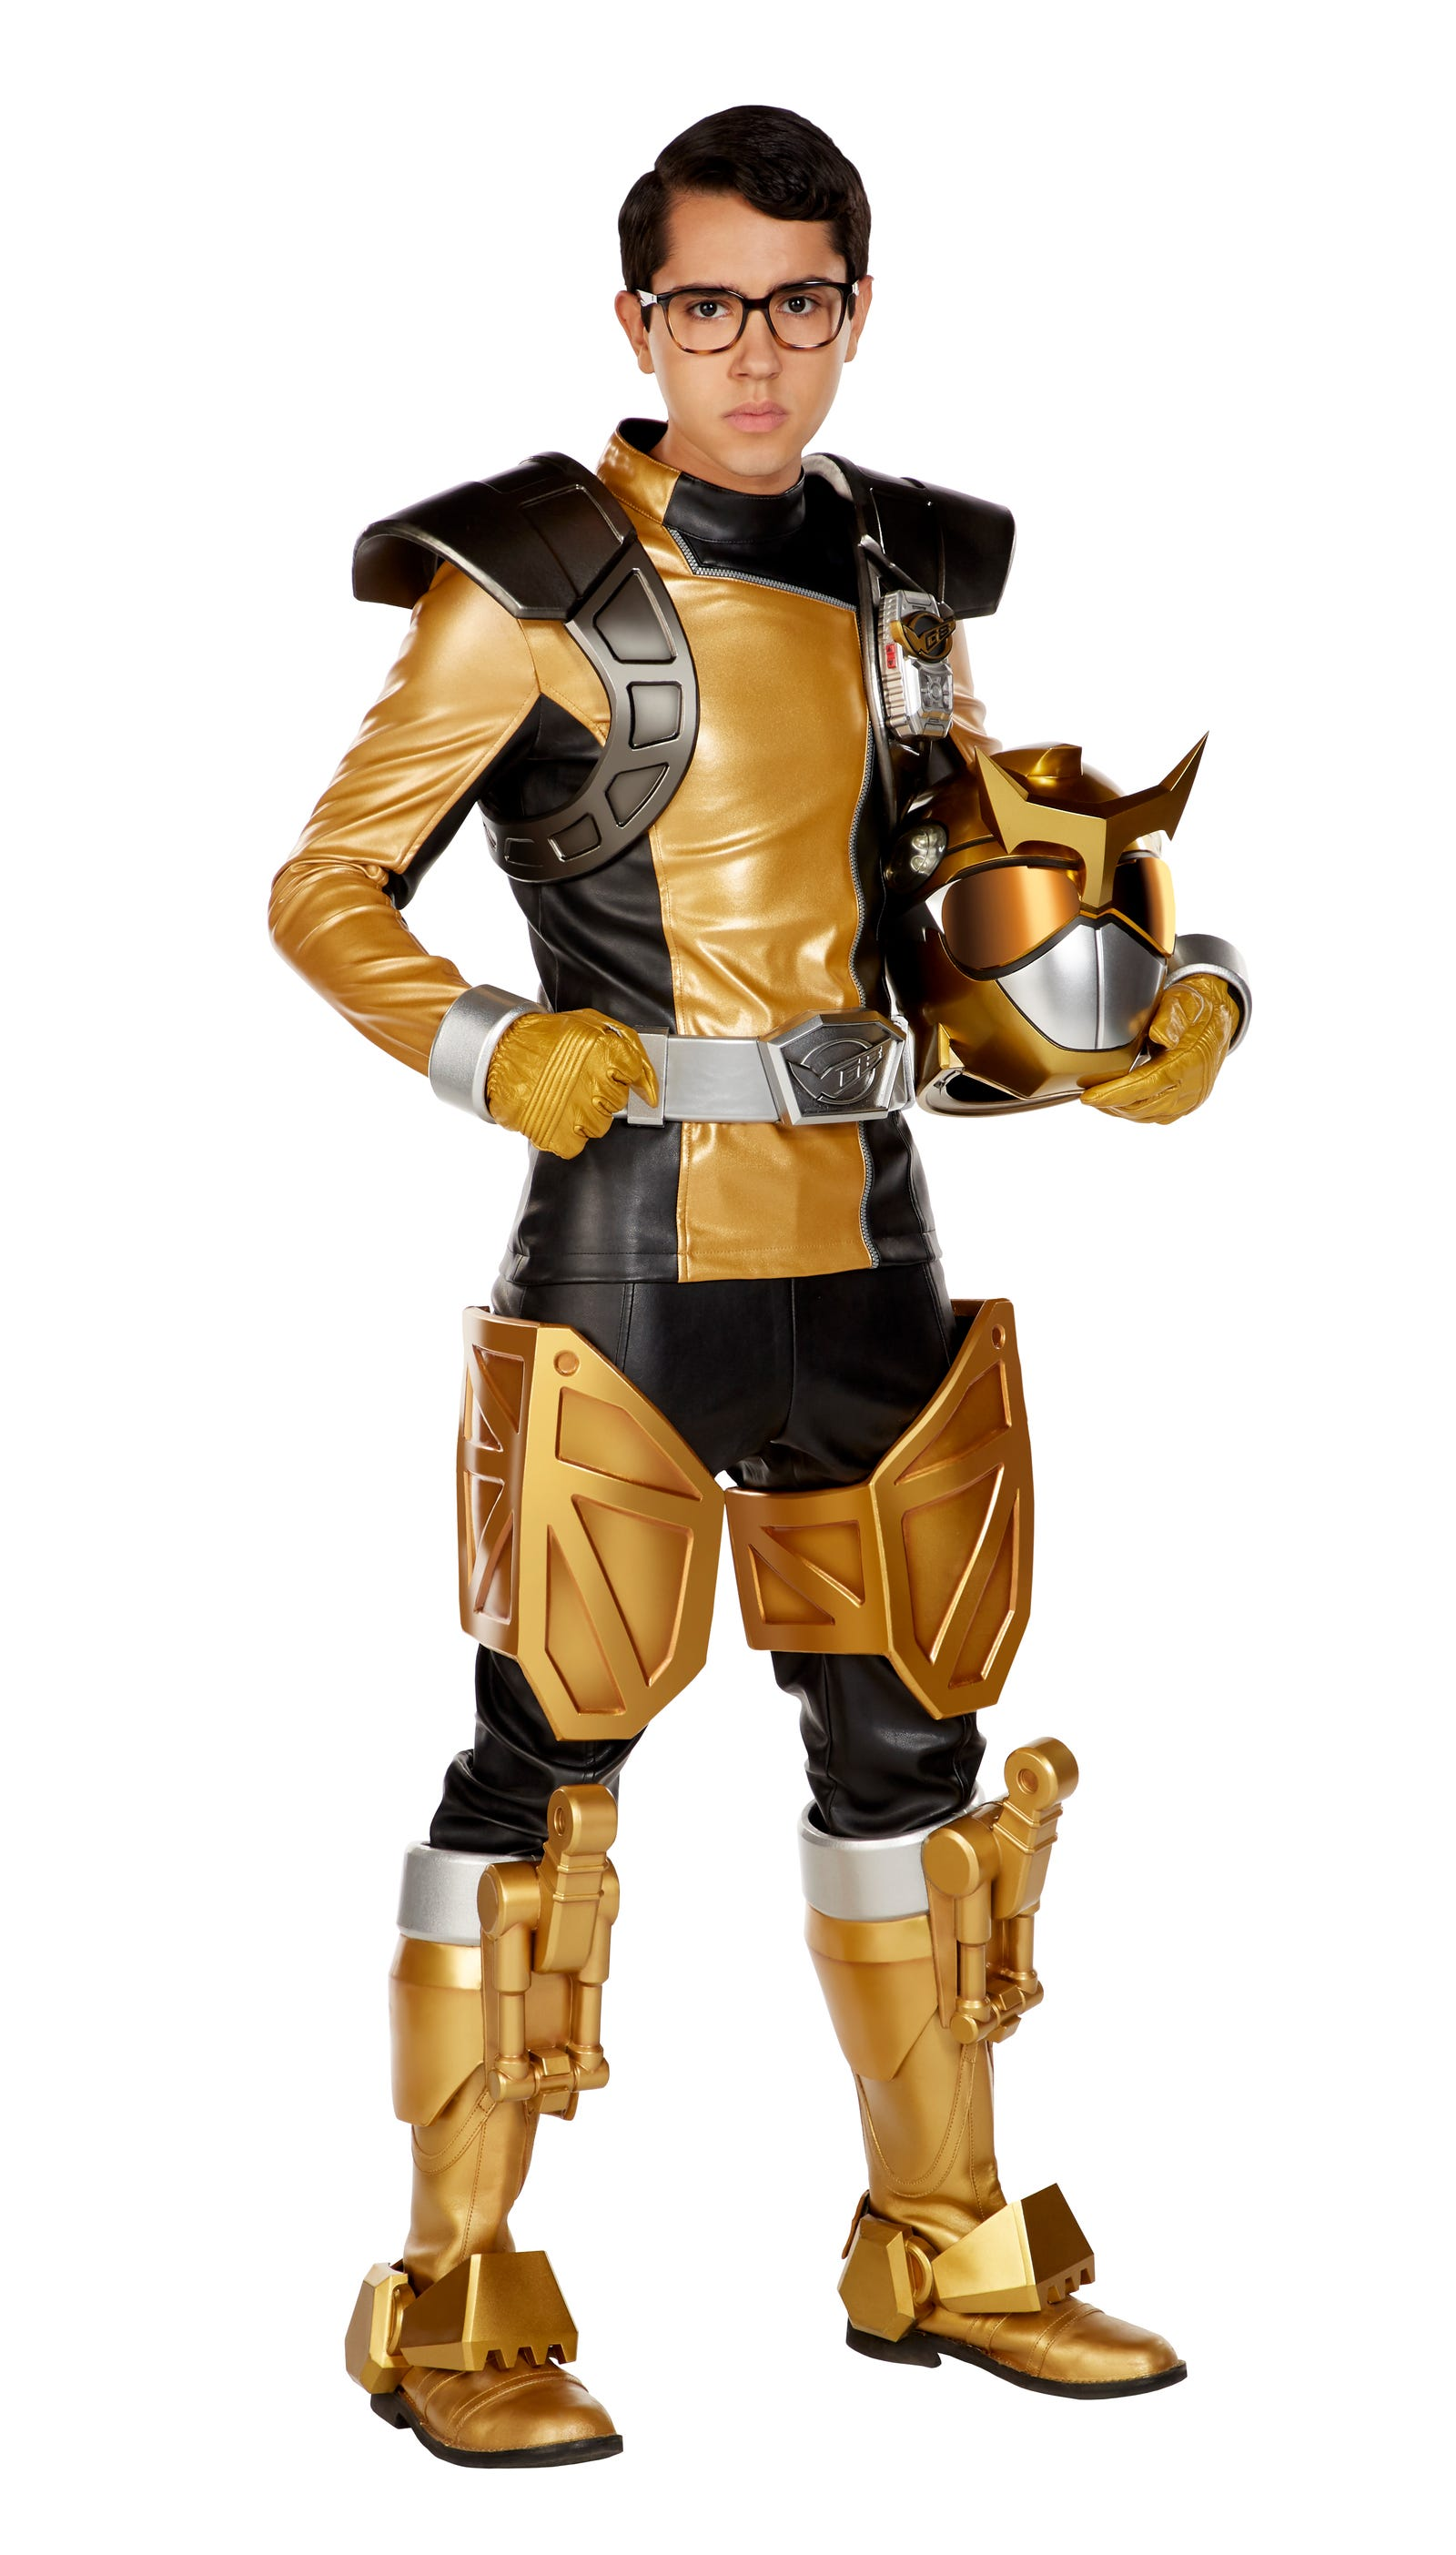 Rodriguez suited up in Nate's new Gold Ranger gear.